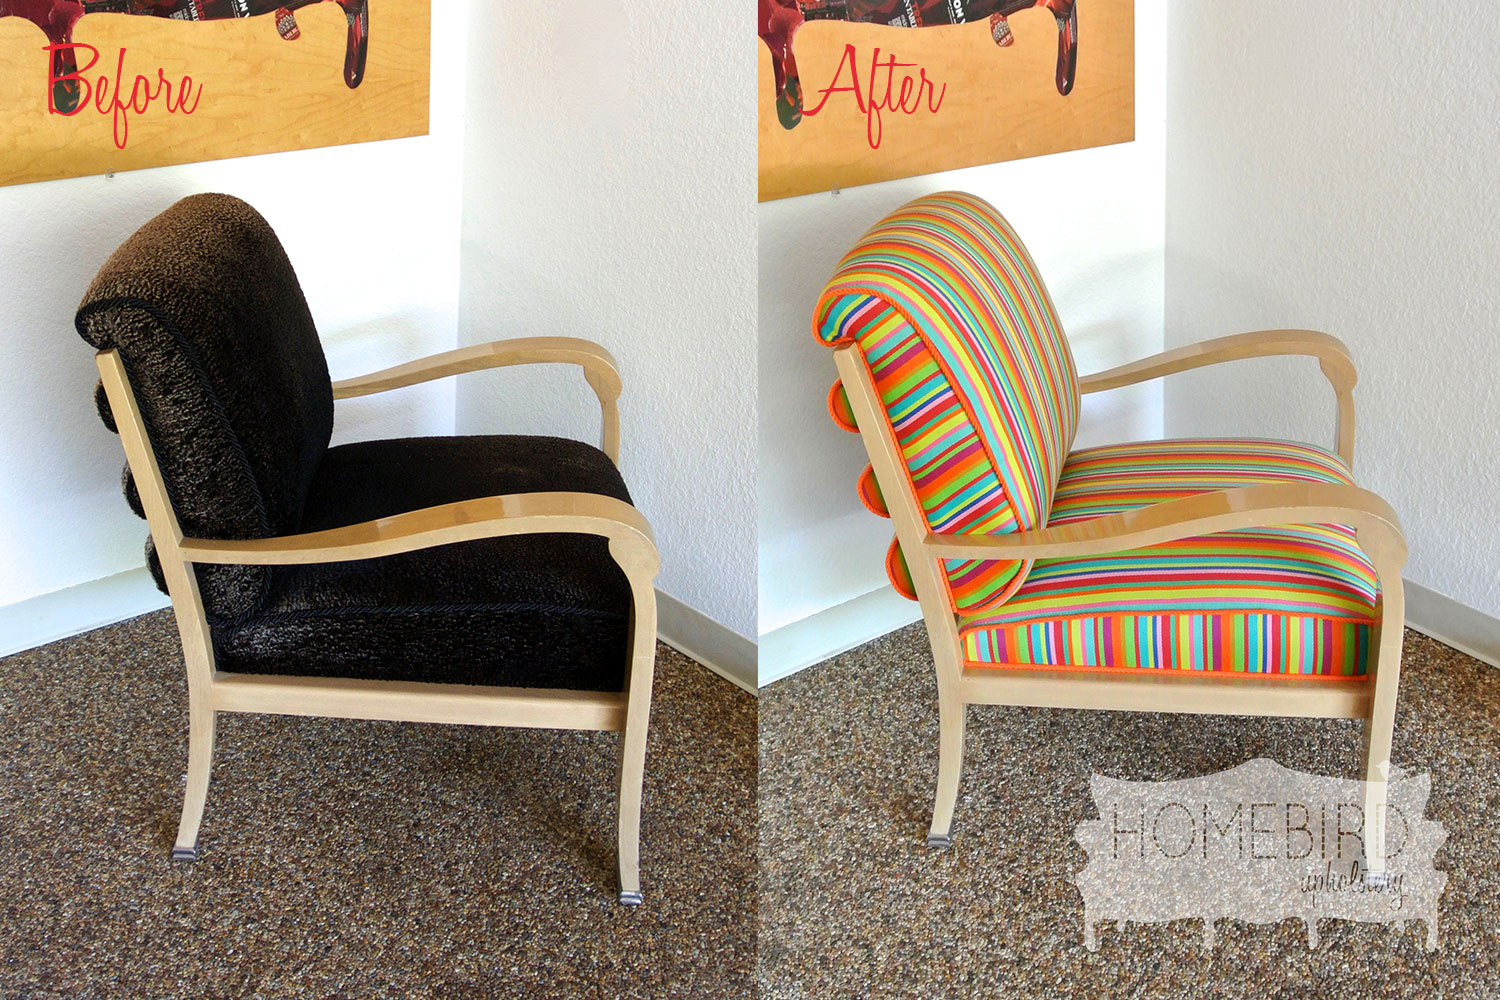 Jenna-Pilant-Homebird-Upholstery-Before-&-After-Picture-of-Upholstery-Recover-From-Drab-To-Fab-Side-Picture